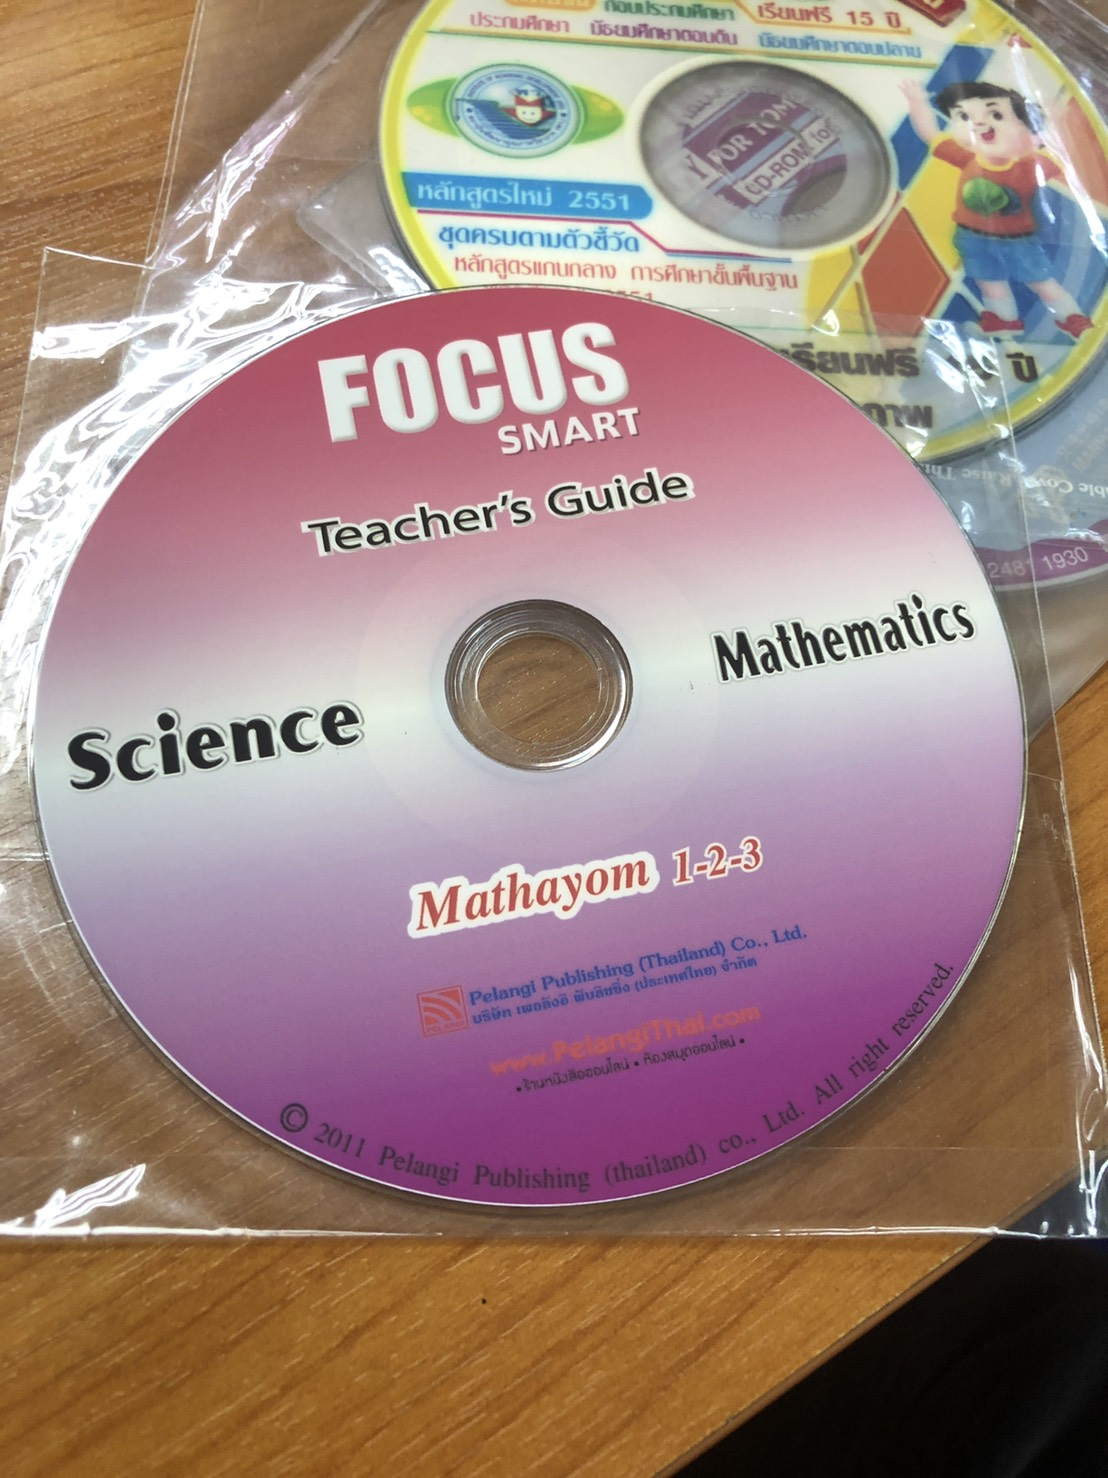 Focus Smart Teacher's Guide for Science M.3